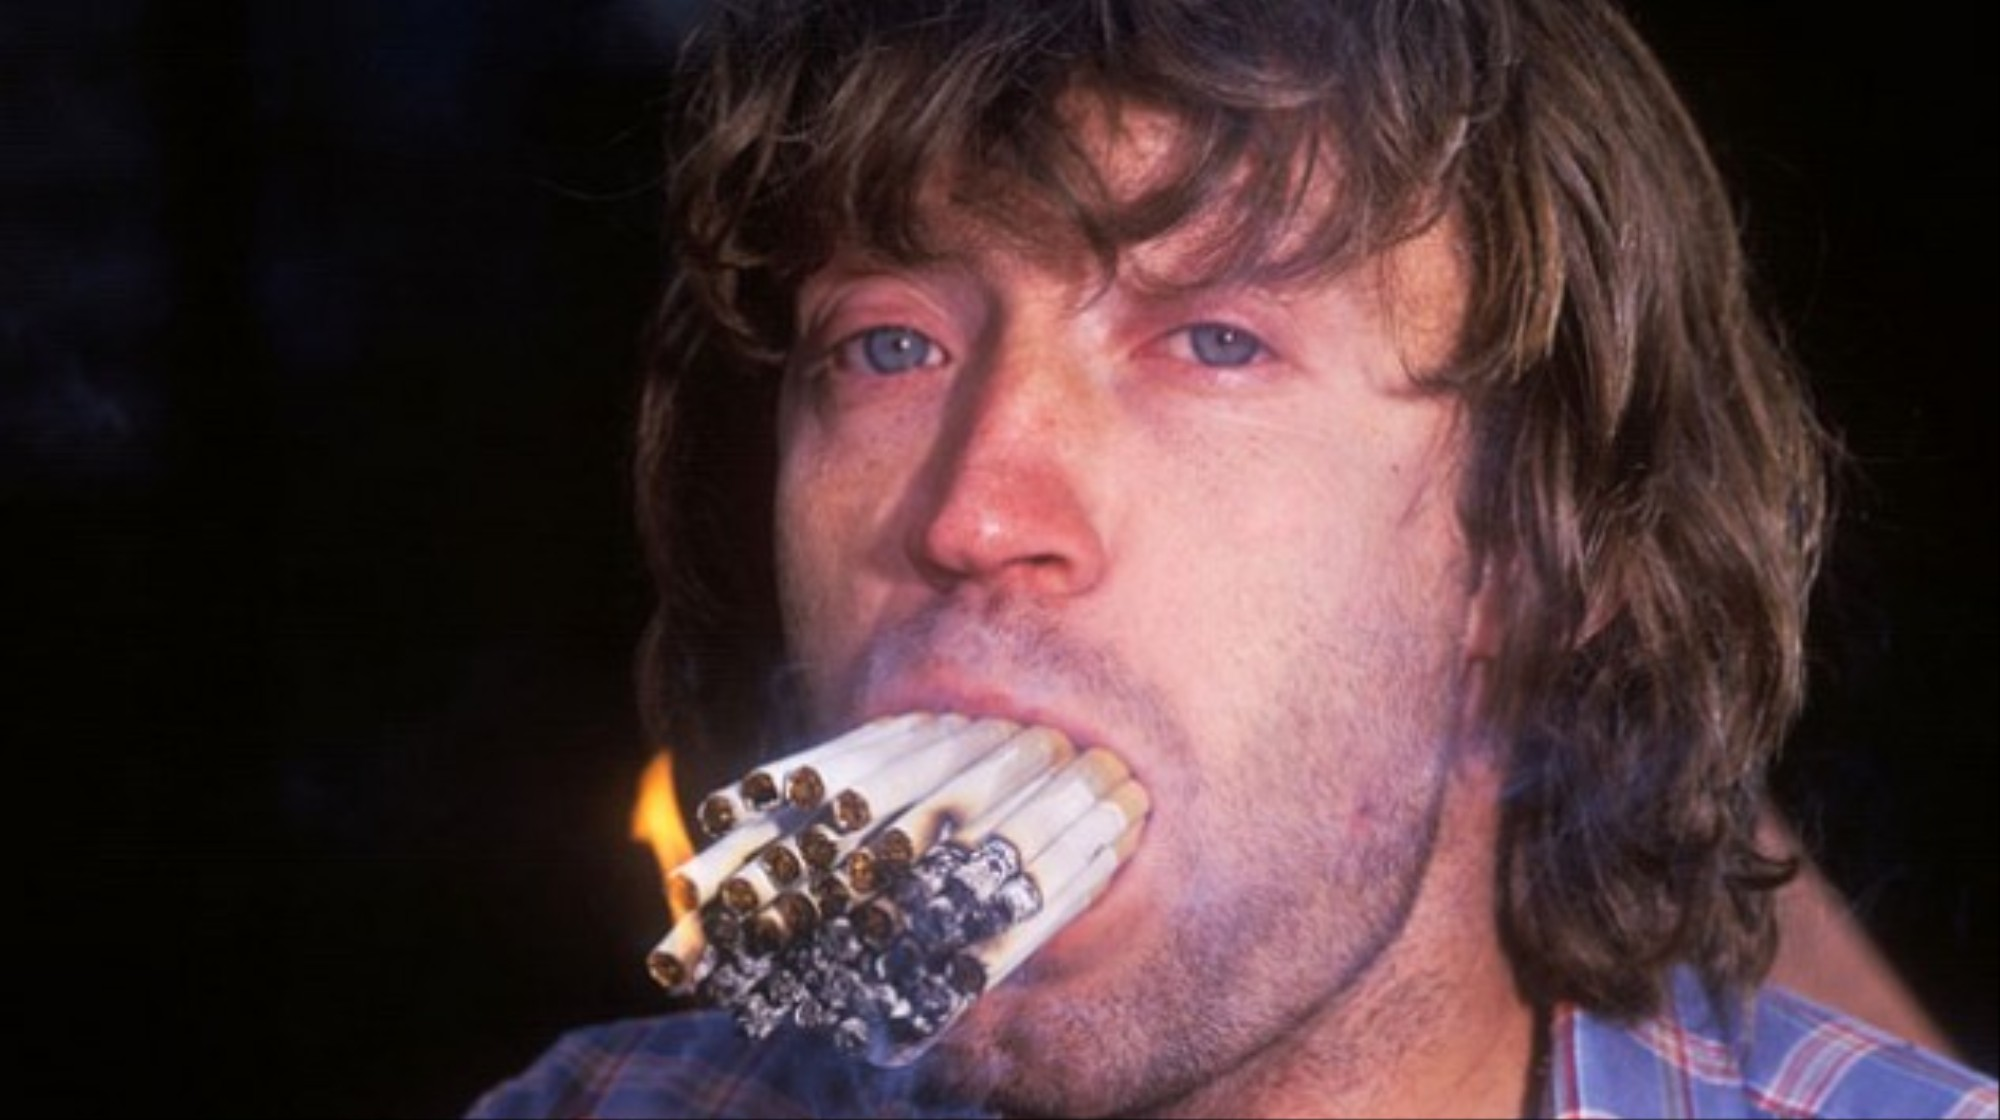 A Brief History of Skateboarders Smoking Cigarettes While